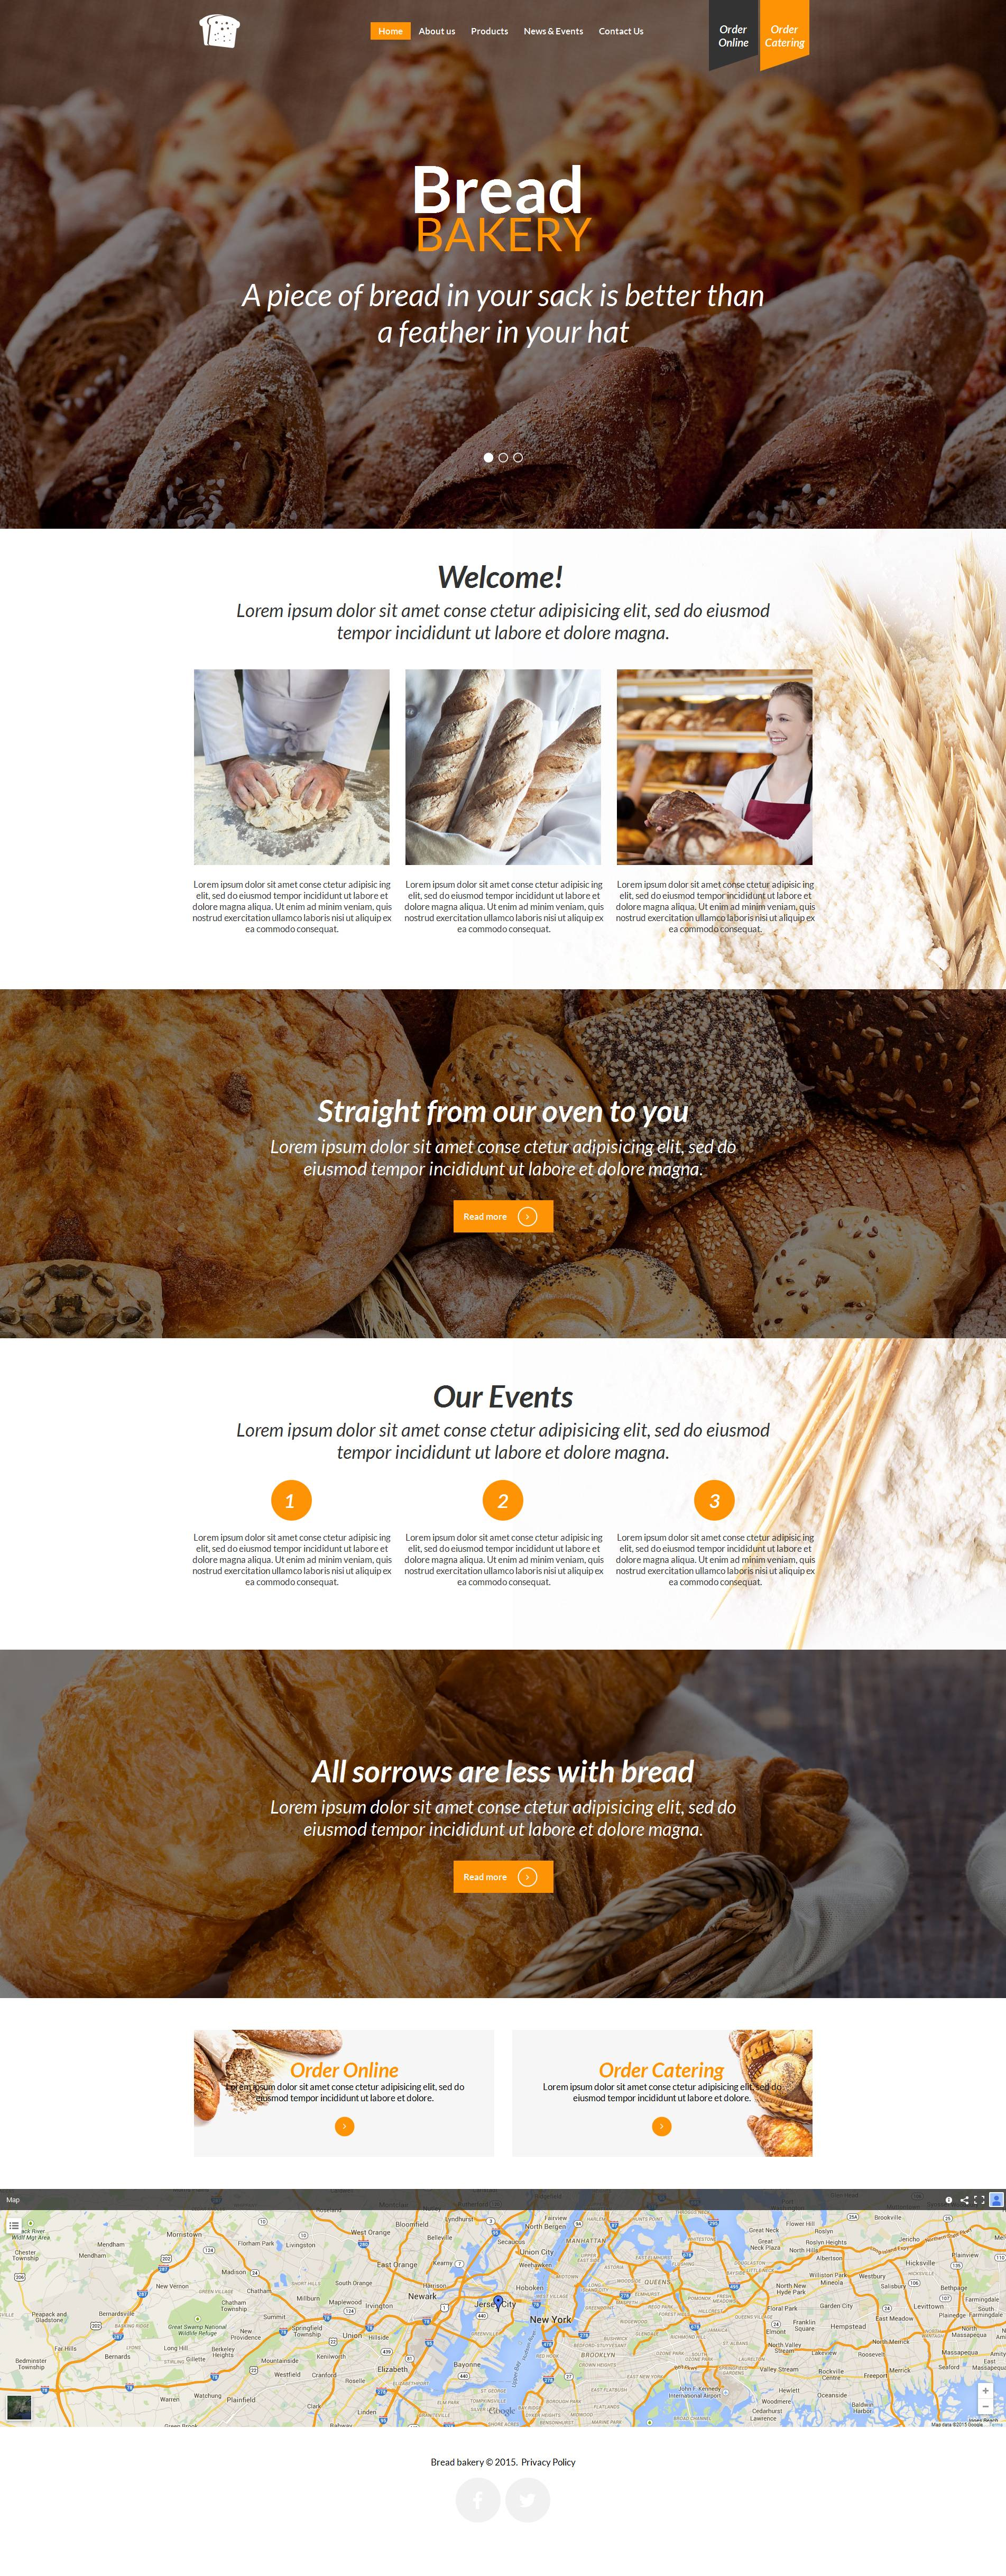 The Bread Bakery Moto CMS HTML Design 53233, one of the best Moto CMS HTML templates of its kind (food & drink), also known as bread bakery Moto CMS HTML template, products Moto CMS HTML template, chocolate Moto CMS HTML template, cake Moto CMS HTML template, biscuit Moto CMS HTML template, filling Moto CMS HTML template, tasty Moto CMS HTML template, delicious Moto CMS HTML template, wedding Moto CMS HTML template, celebration Moto CMS HTML template, birthday Moto CMS HTML template, fruits Moto CMS HTML template, sweets Moto CMS HTML template, cookies Moto CMS HTML template, specials Moto CMS HTML template, receipts Moto CMS HTML template, pastry Moto CMS HTML template, fancy Moto CMS HTML template, tarts Moto CMS HTML template, custard Moto CMS HTML template, cream Moto CMS HTML template, cookery Moto CMS HTML template, experts Moto CMS HTML template, masters Moto CMS HTML template, services Moto CMS HTML template, order Moto CMS HTML template, quotes Moto CMS HTML template, delivery Moto CMS HTML template, staff and related with bread bakery, products, chocolate, cake, biscuit, filling, tasty, delicious, wedding, celebration, birthday, fruits, sweets, cookies, specials, receipts, pastry, fancy, tarts, custard, cream, cookery, experts, masters, services, order, quotes, delivery, staff, etc.